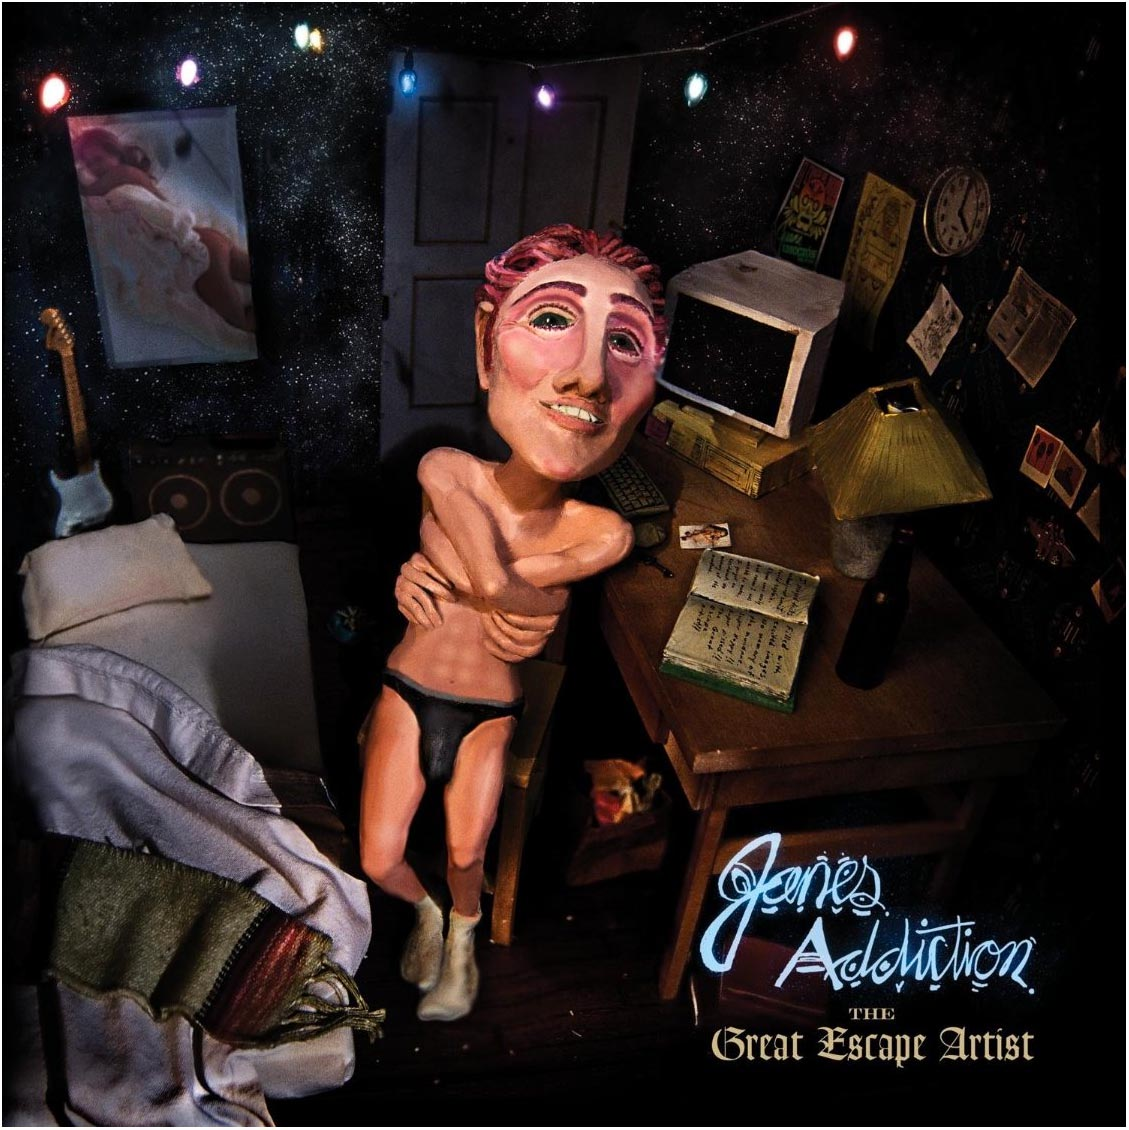 Jane's Addiction – The Great Escape Artist (2011)